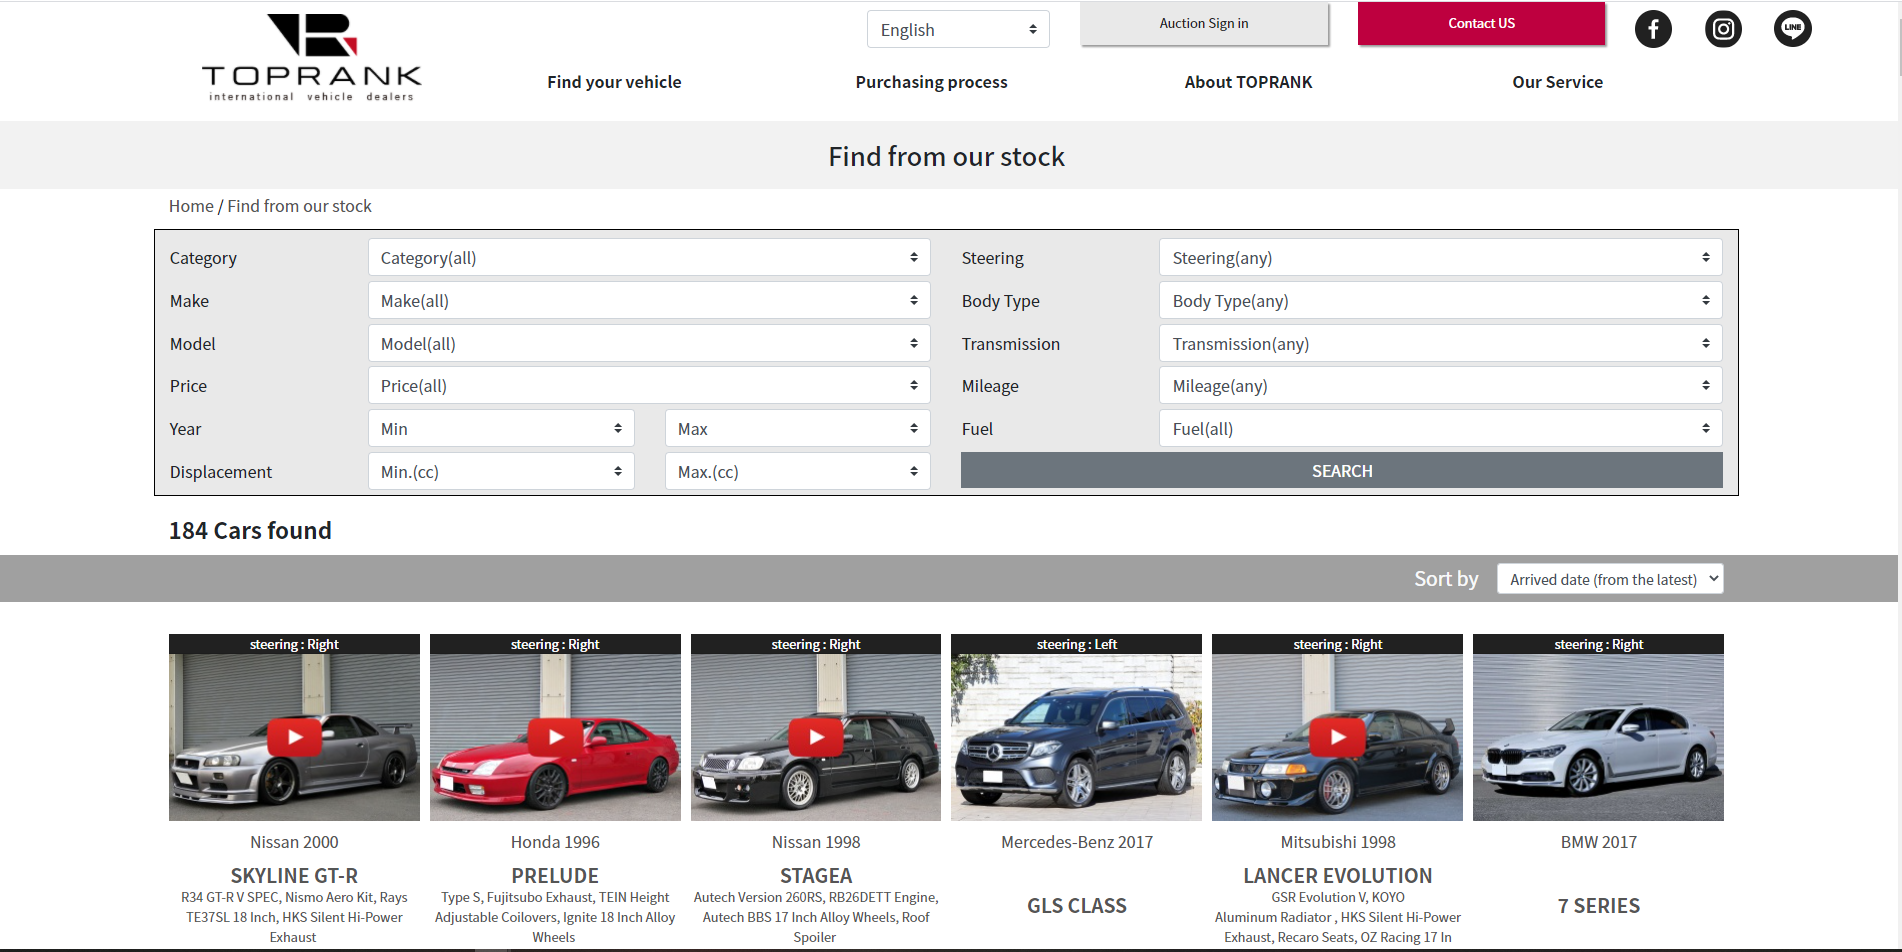 Toprank is a global vehicle dealer based in Japan, with worldwide locations